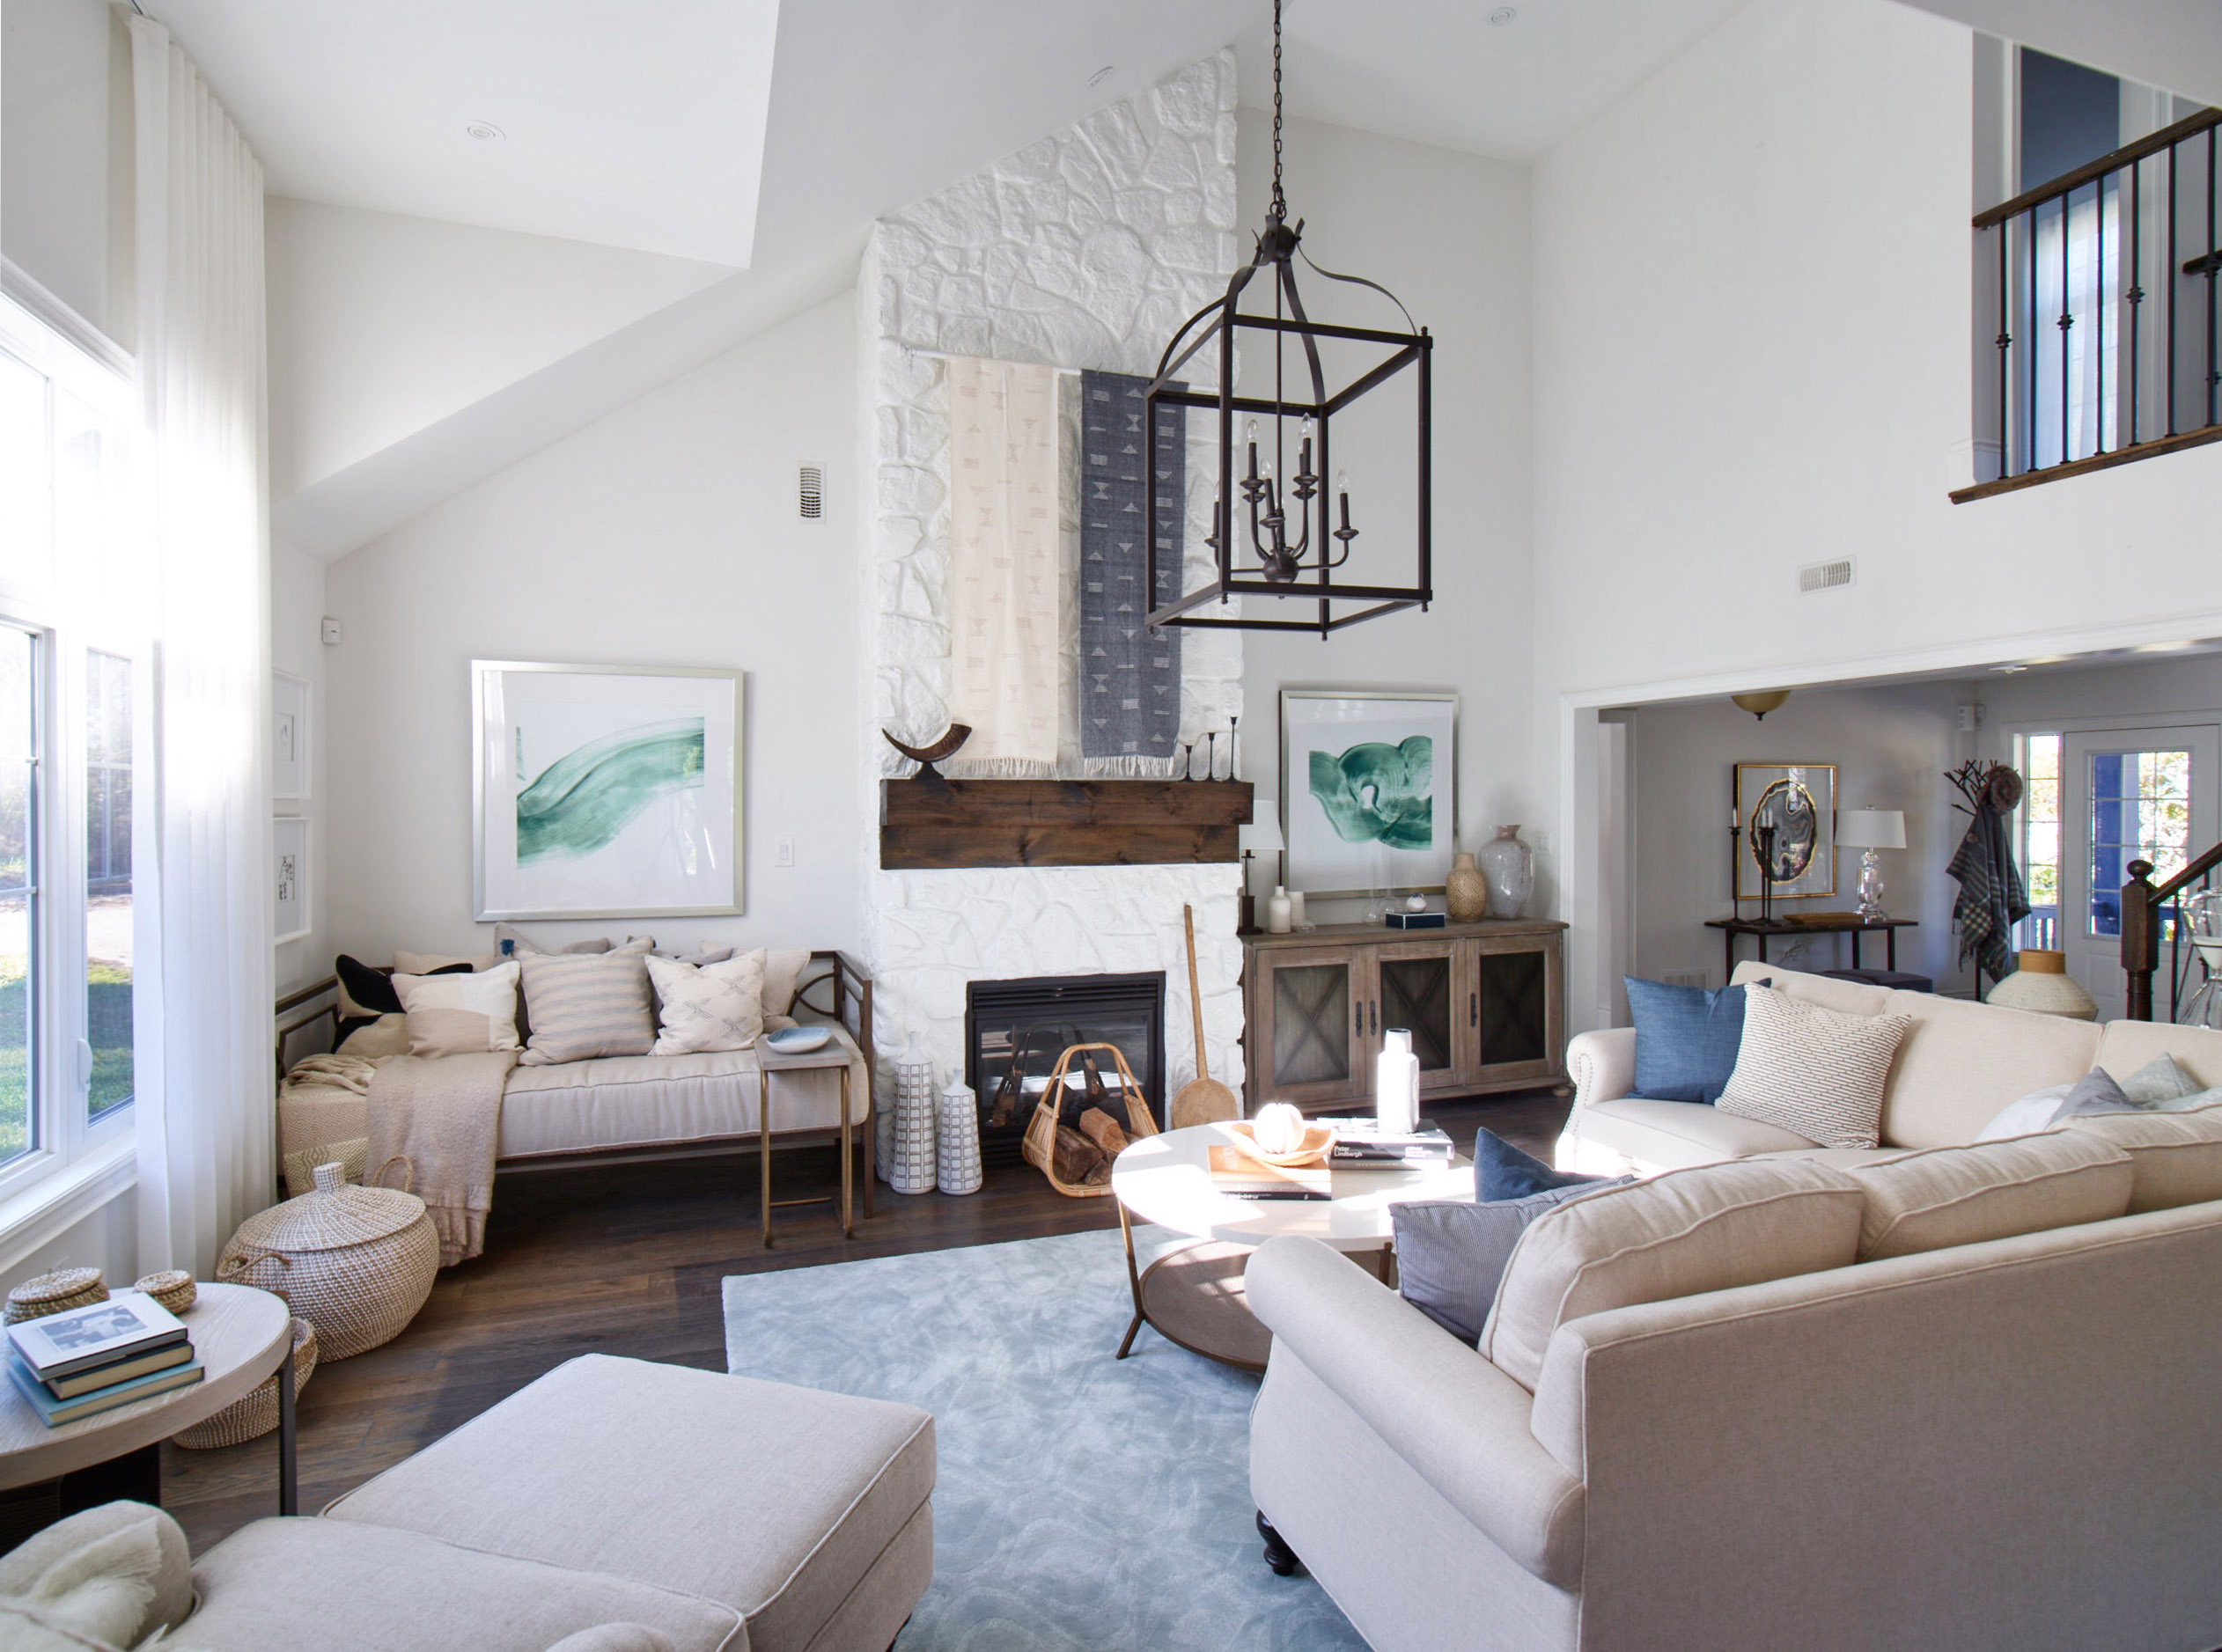 Oak Bay den with high ceilings, white brick fireplace, and large black metal lantern pendant